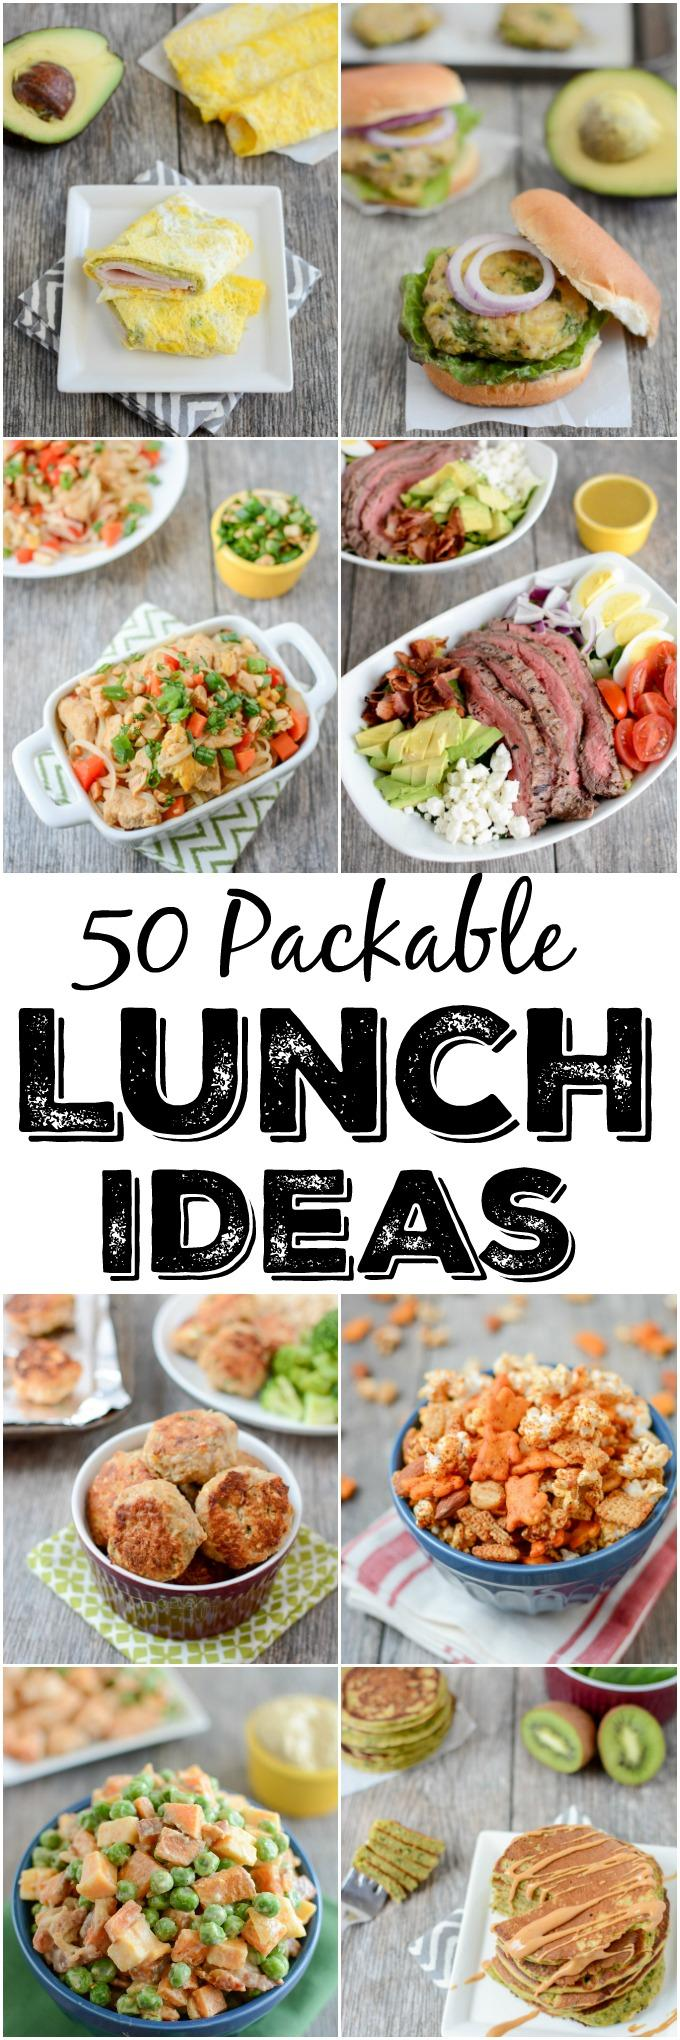 50 packable lunch ideas | lunch ideas for work | the lean green bean